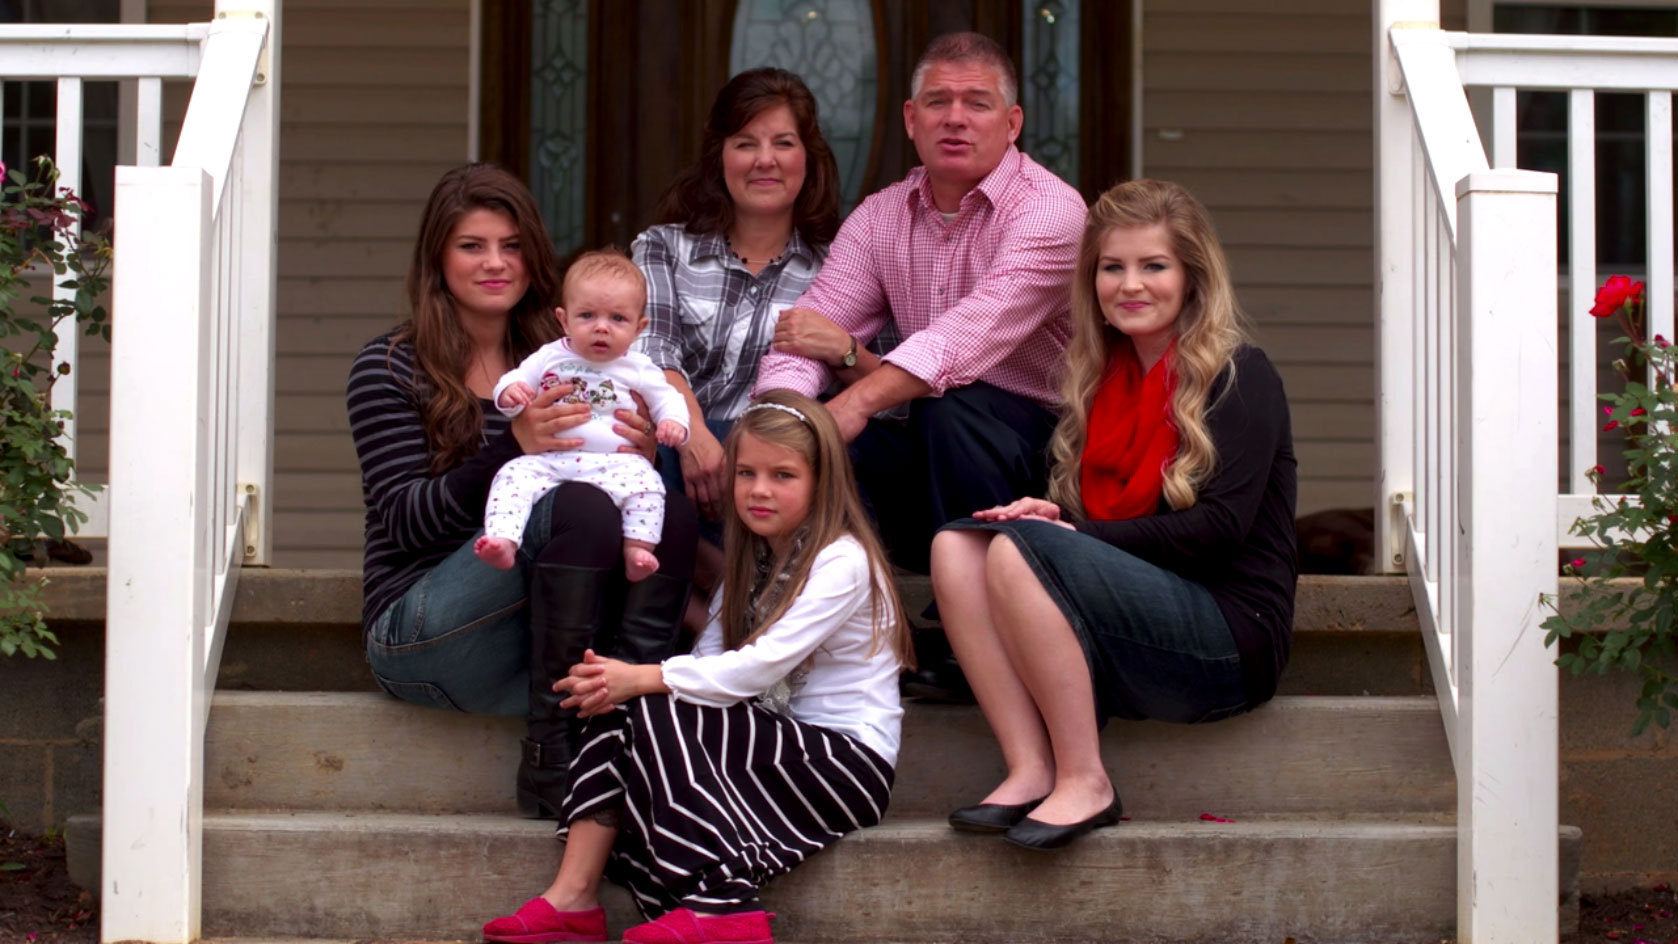 The Bates Family Speak Up About Bullying